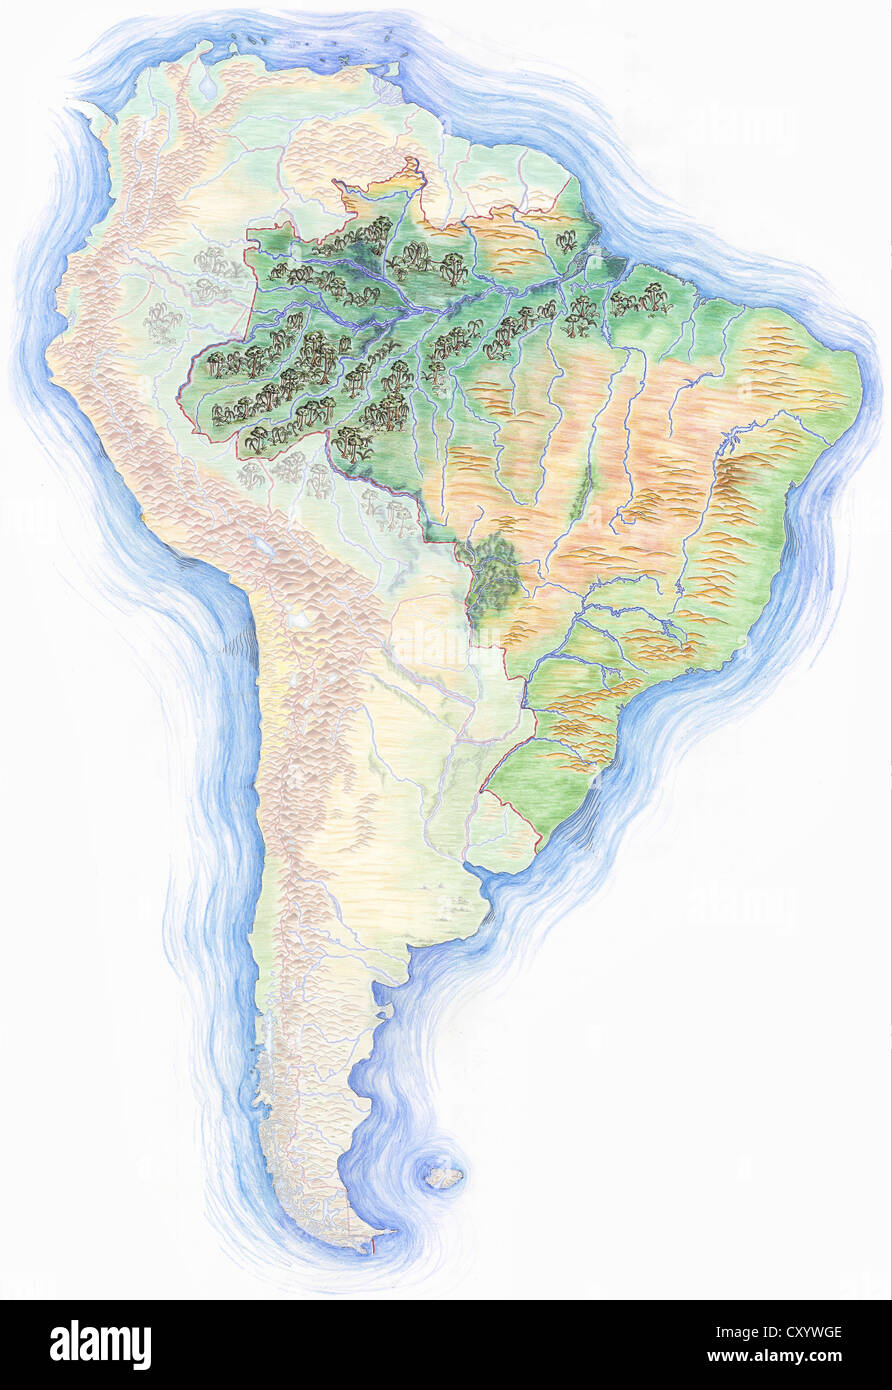 Highly detailed hand drawn map of south america with brazil stock highly detailed hand drawn map of south america with brazil highlighted gumiabroncs Images